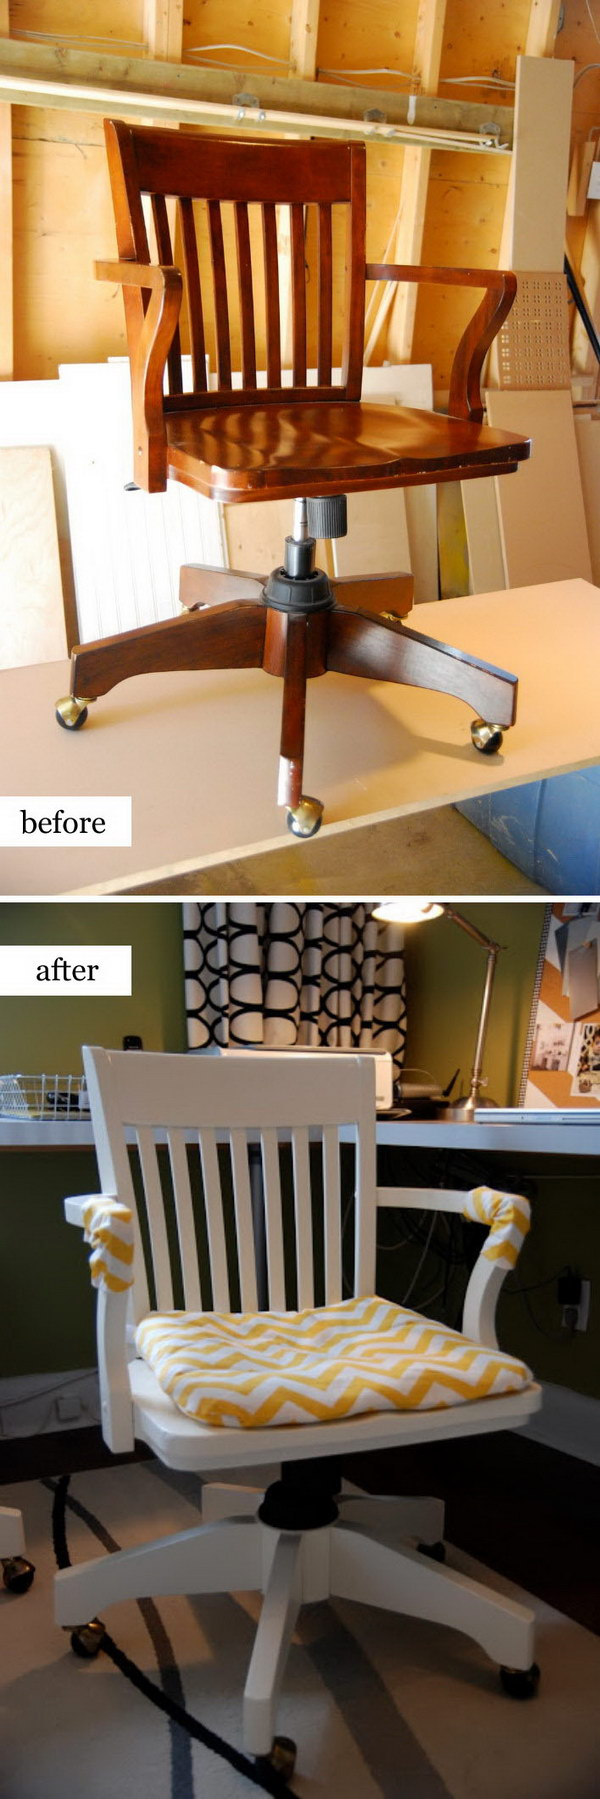 unique chair design ideas eno hanging 53 best diy to repurpose old furniture for your home decor